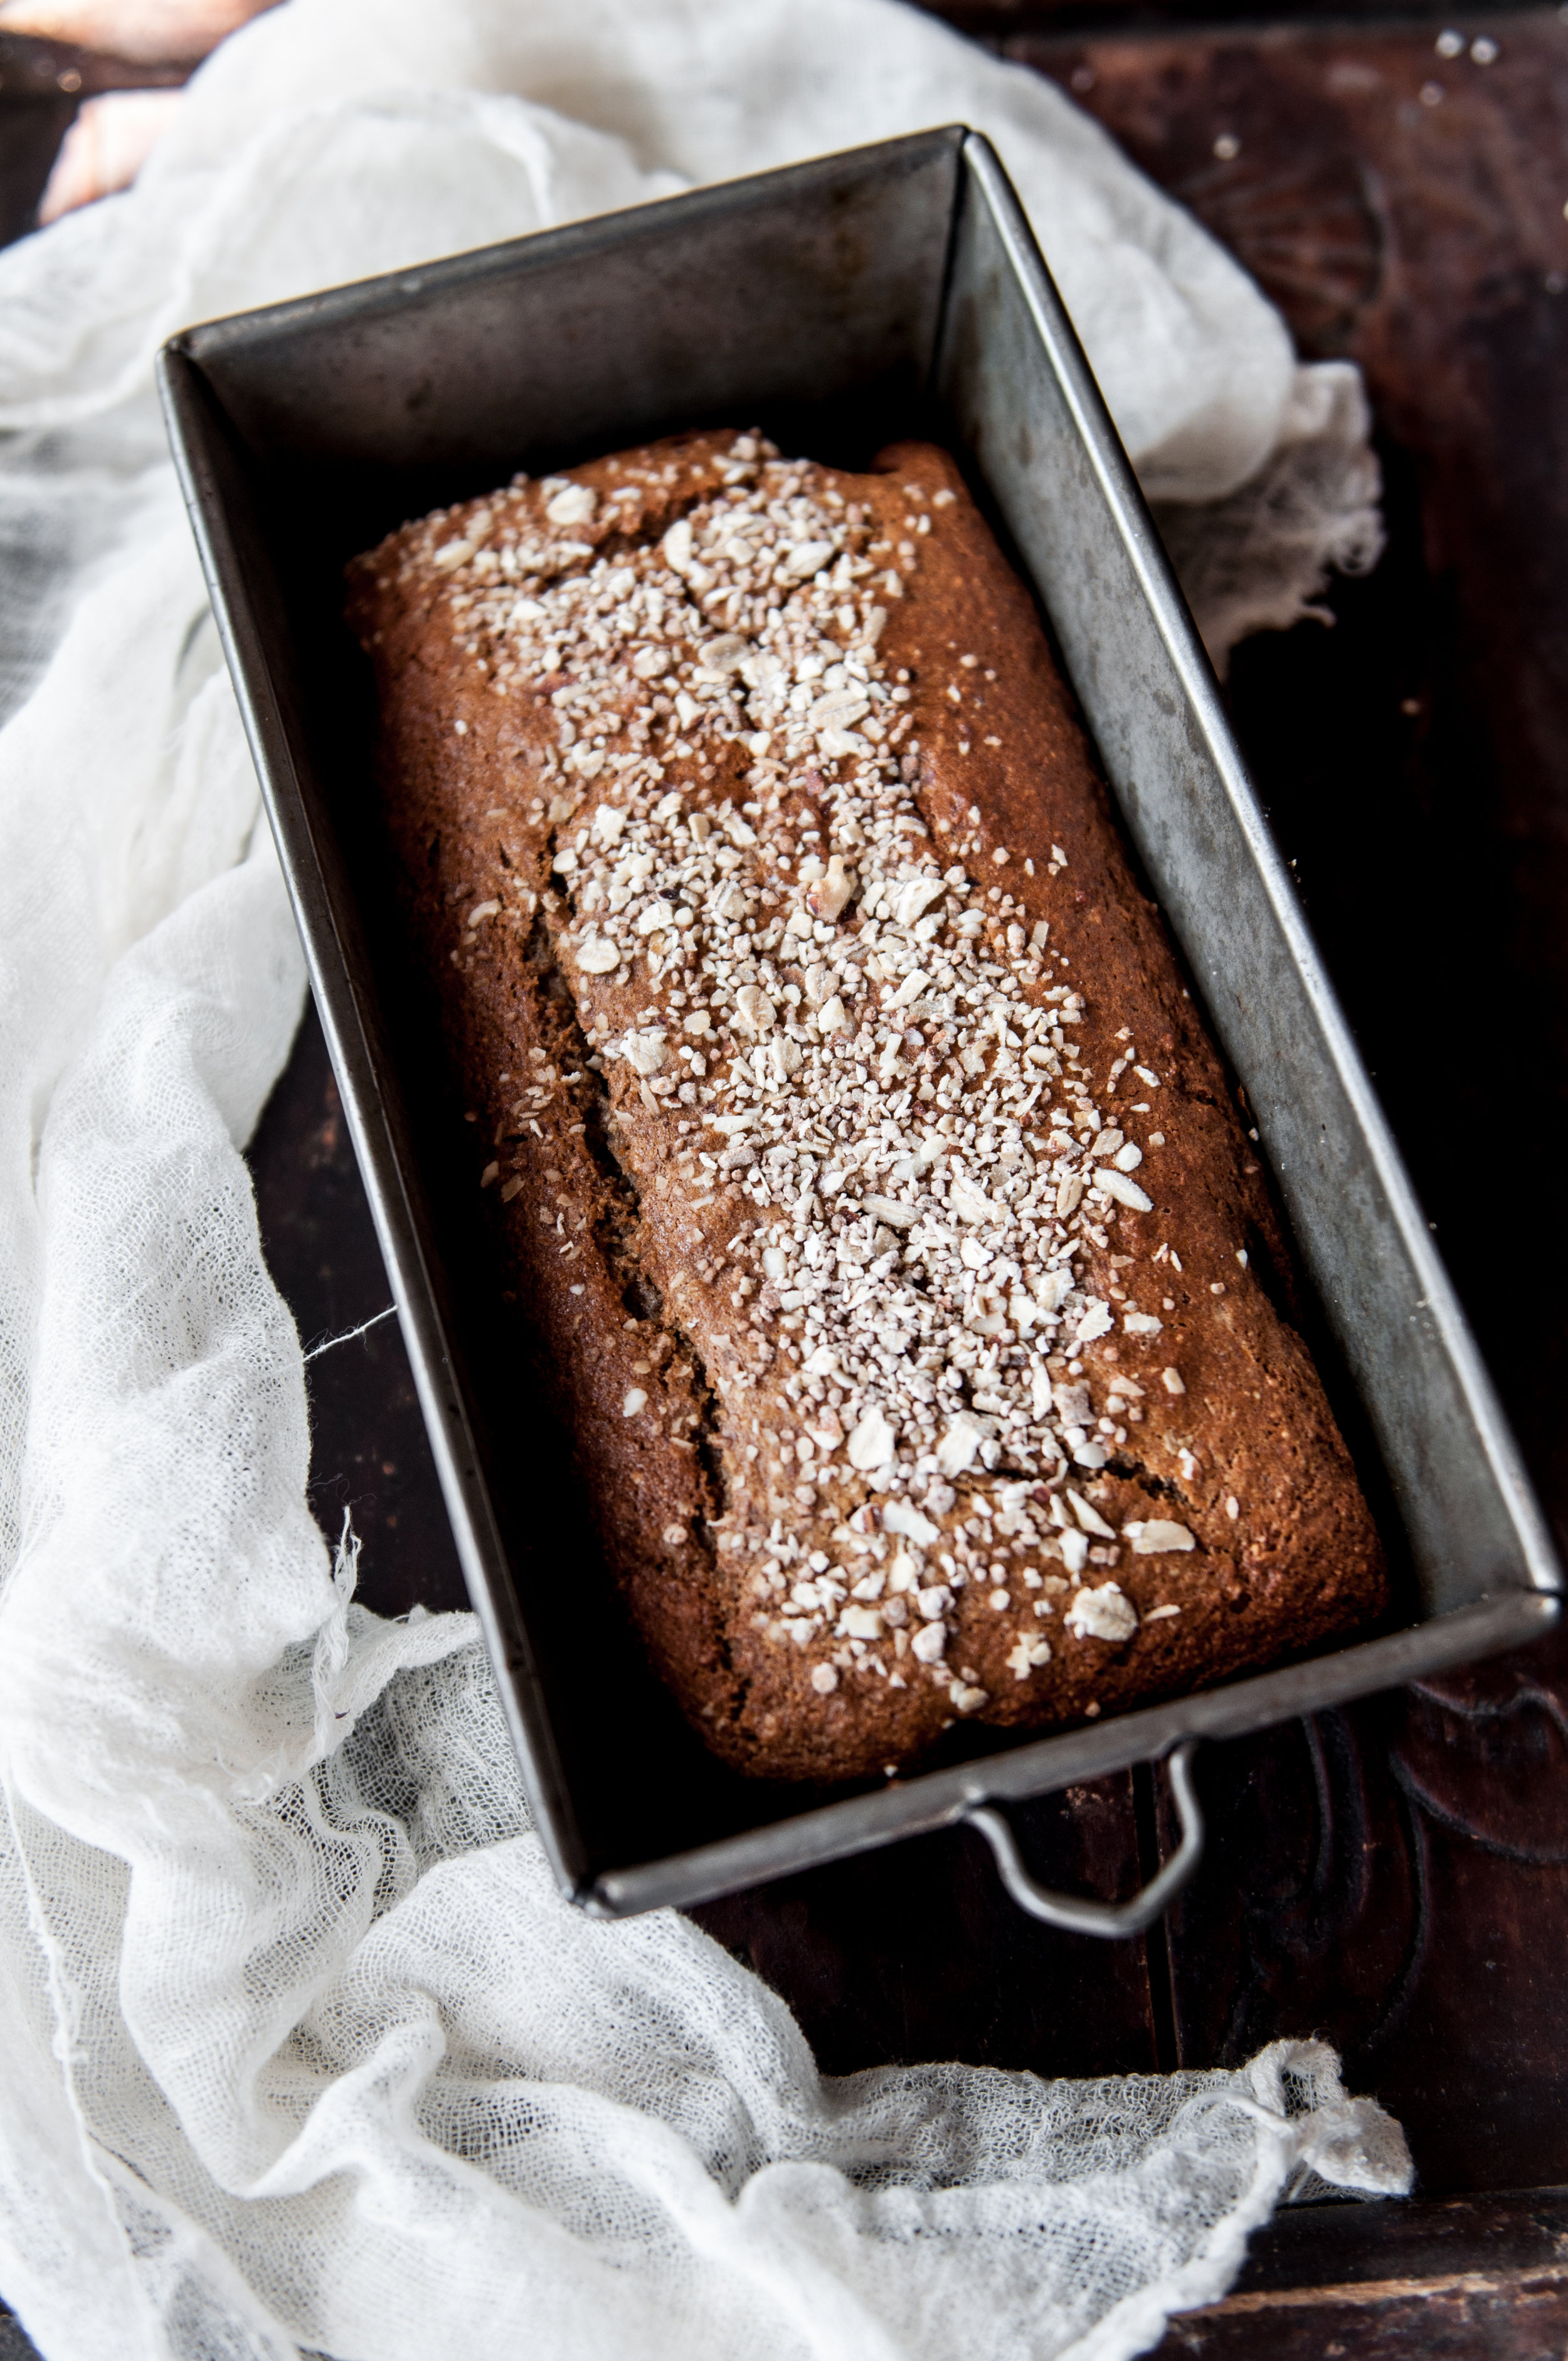 BANANA LOAF - 3/4 cup oat flour3/4 cup almond flour1 T potato starch2 small eggs1/2 cup sugar3 oz butter1 ripe banana1/4 cup + 1 tsp Greek style yogurt1 tsp baking sodaFor the frosting:1/4 cup Greek style yogurt1-1/2 tsp sugarenough water to thin